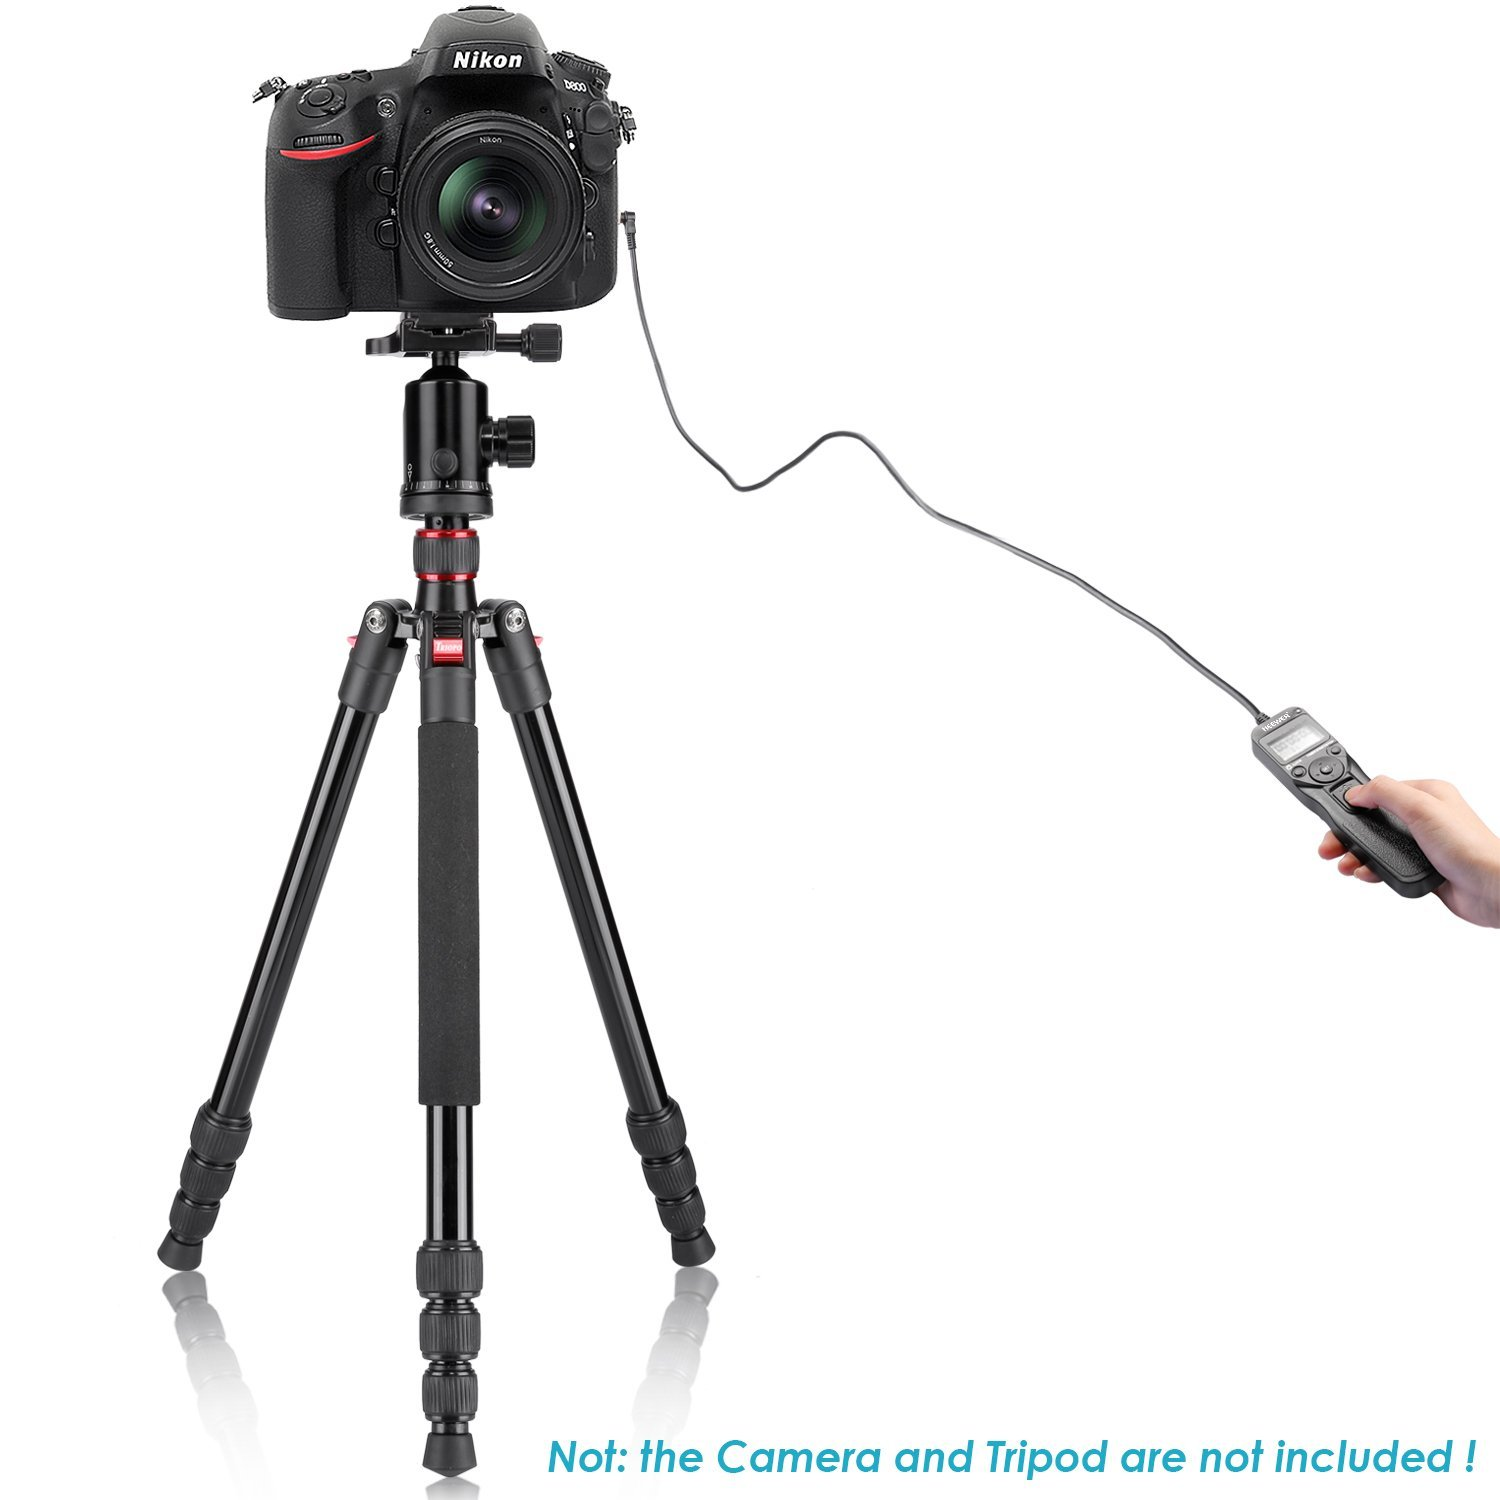 D700 Neewer Photography Digital Interval Meter Timer Remote Control Compatible with Nikon D200 D300  D300S D810 D800 D800E F5 F6 F100 F90 F90x Kodak DCS-14n Fujifilm Finepix S3pro S5pro